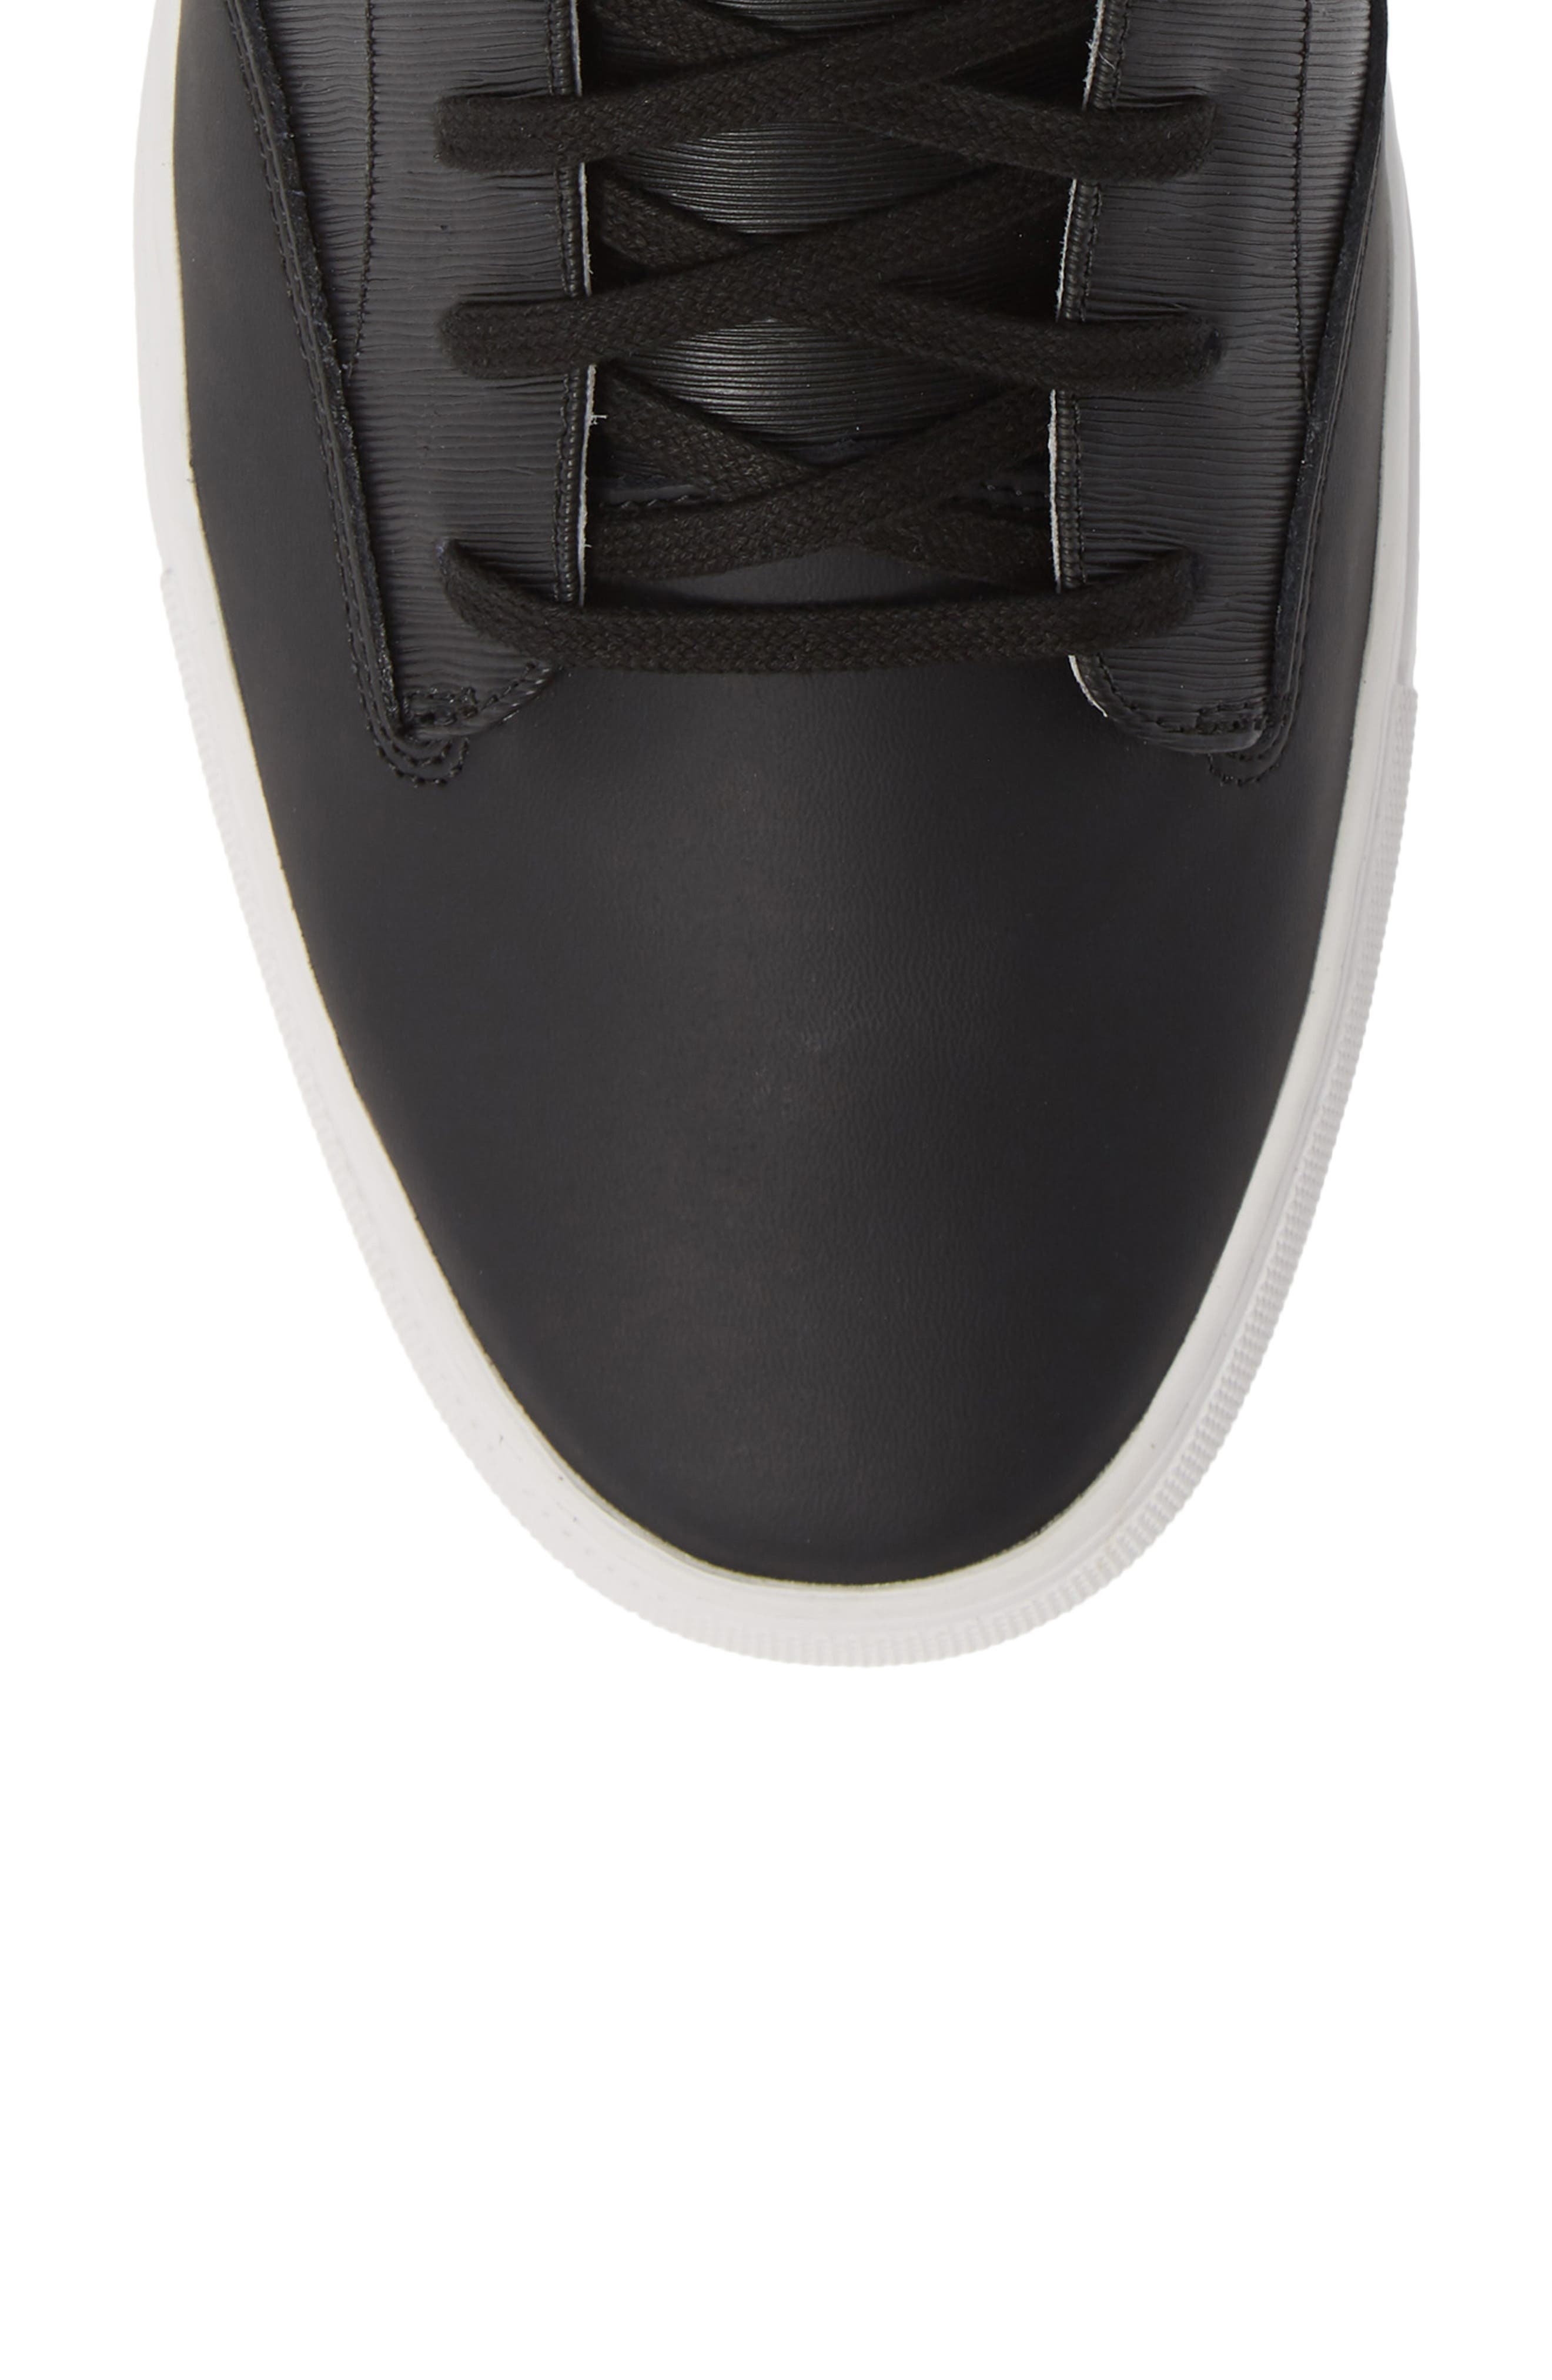 'Porter' High Top Sneaker,                             Alternate thumbnail 5, color,                             BLACK SUEDE/ LEATHER